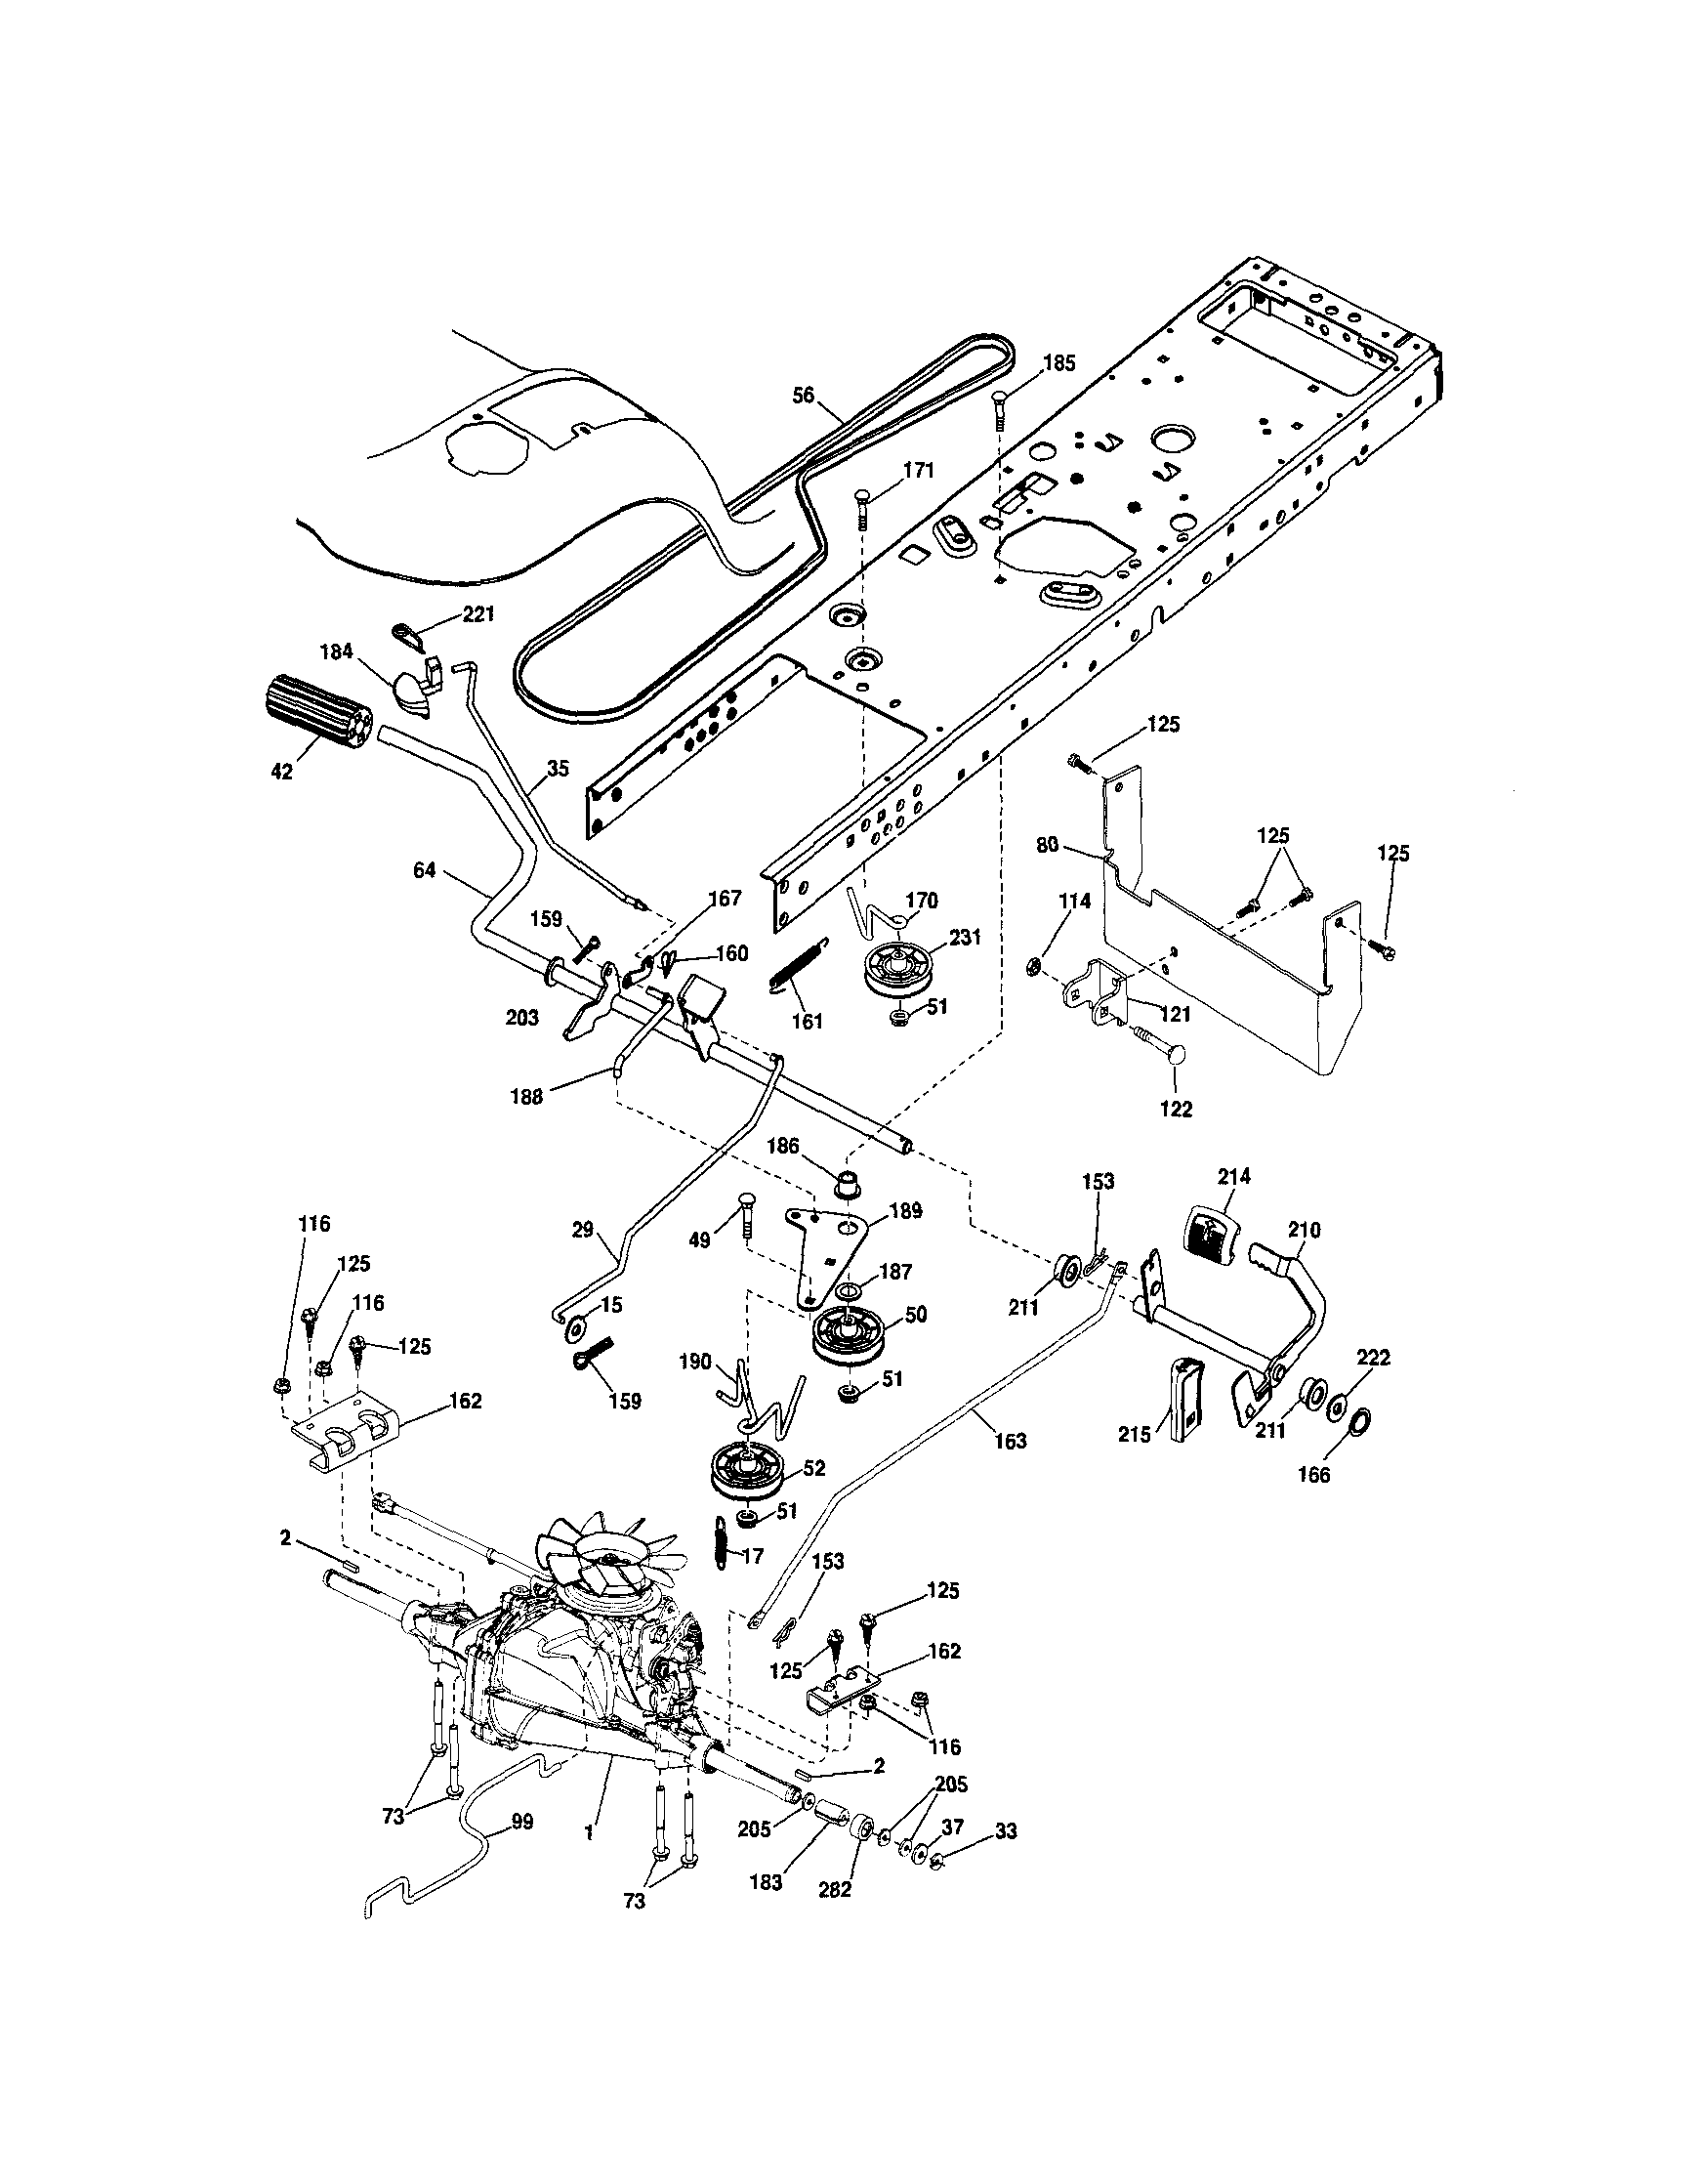 Craftsman Dls 3500 Parts Diagram